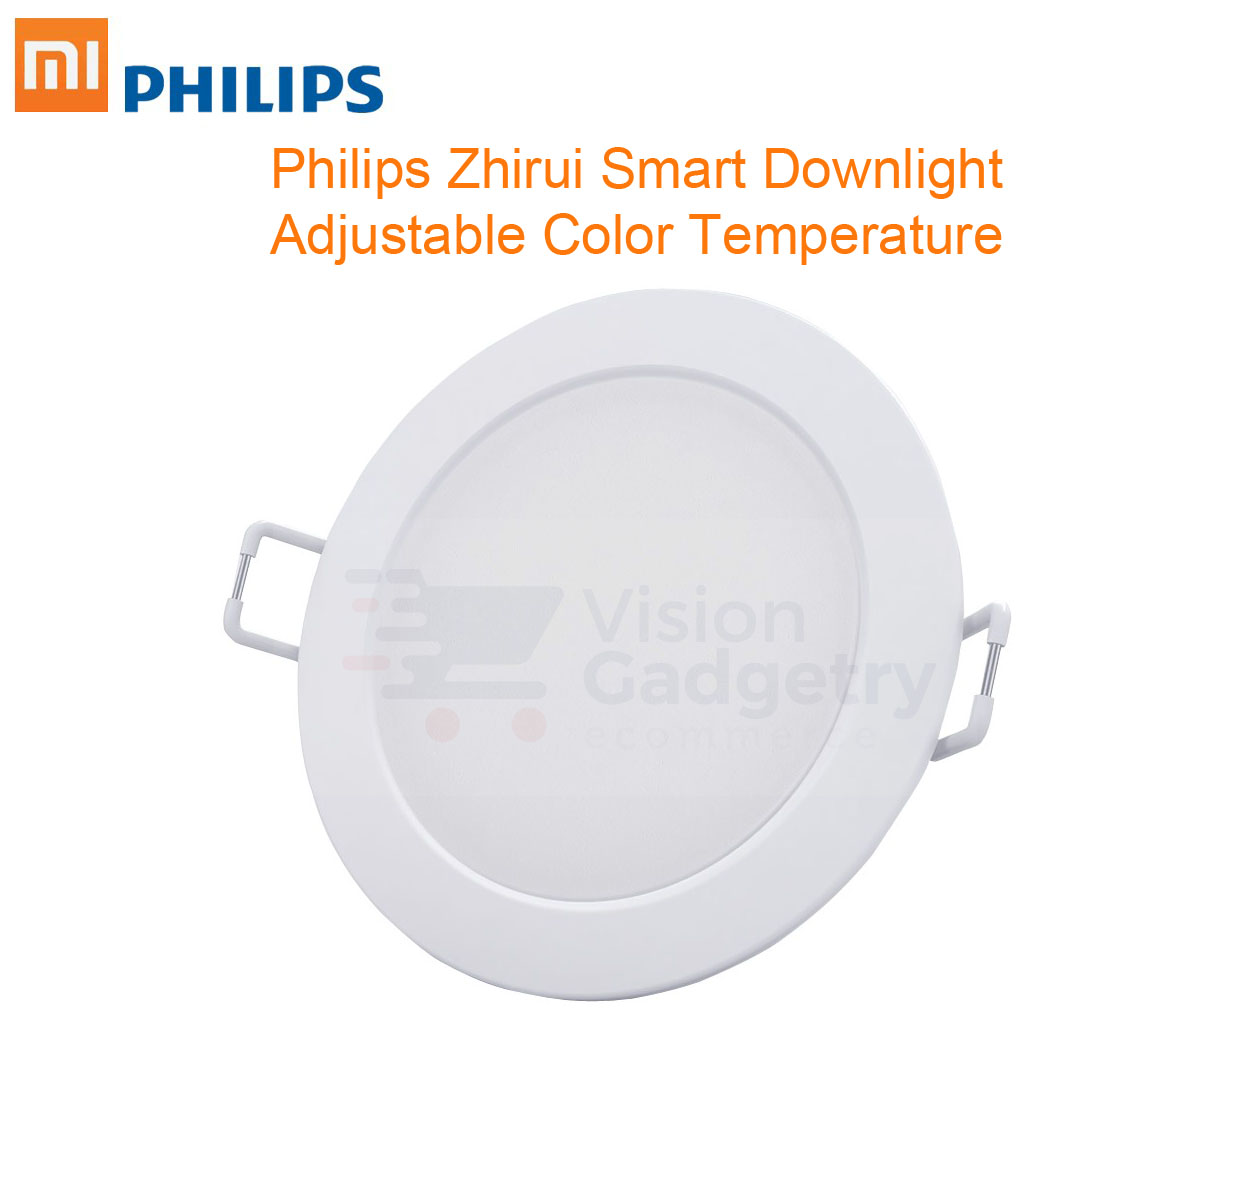 Xiaomi Ceiling Light Philips Xiaomi Philips Zhirui Smart Ceiling End 1 25 2021 12 00 Am